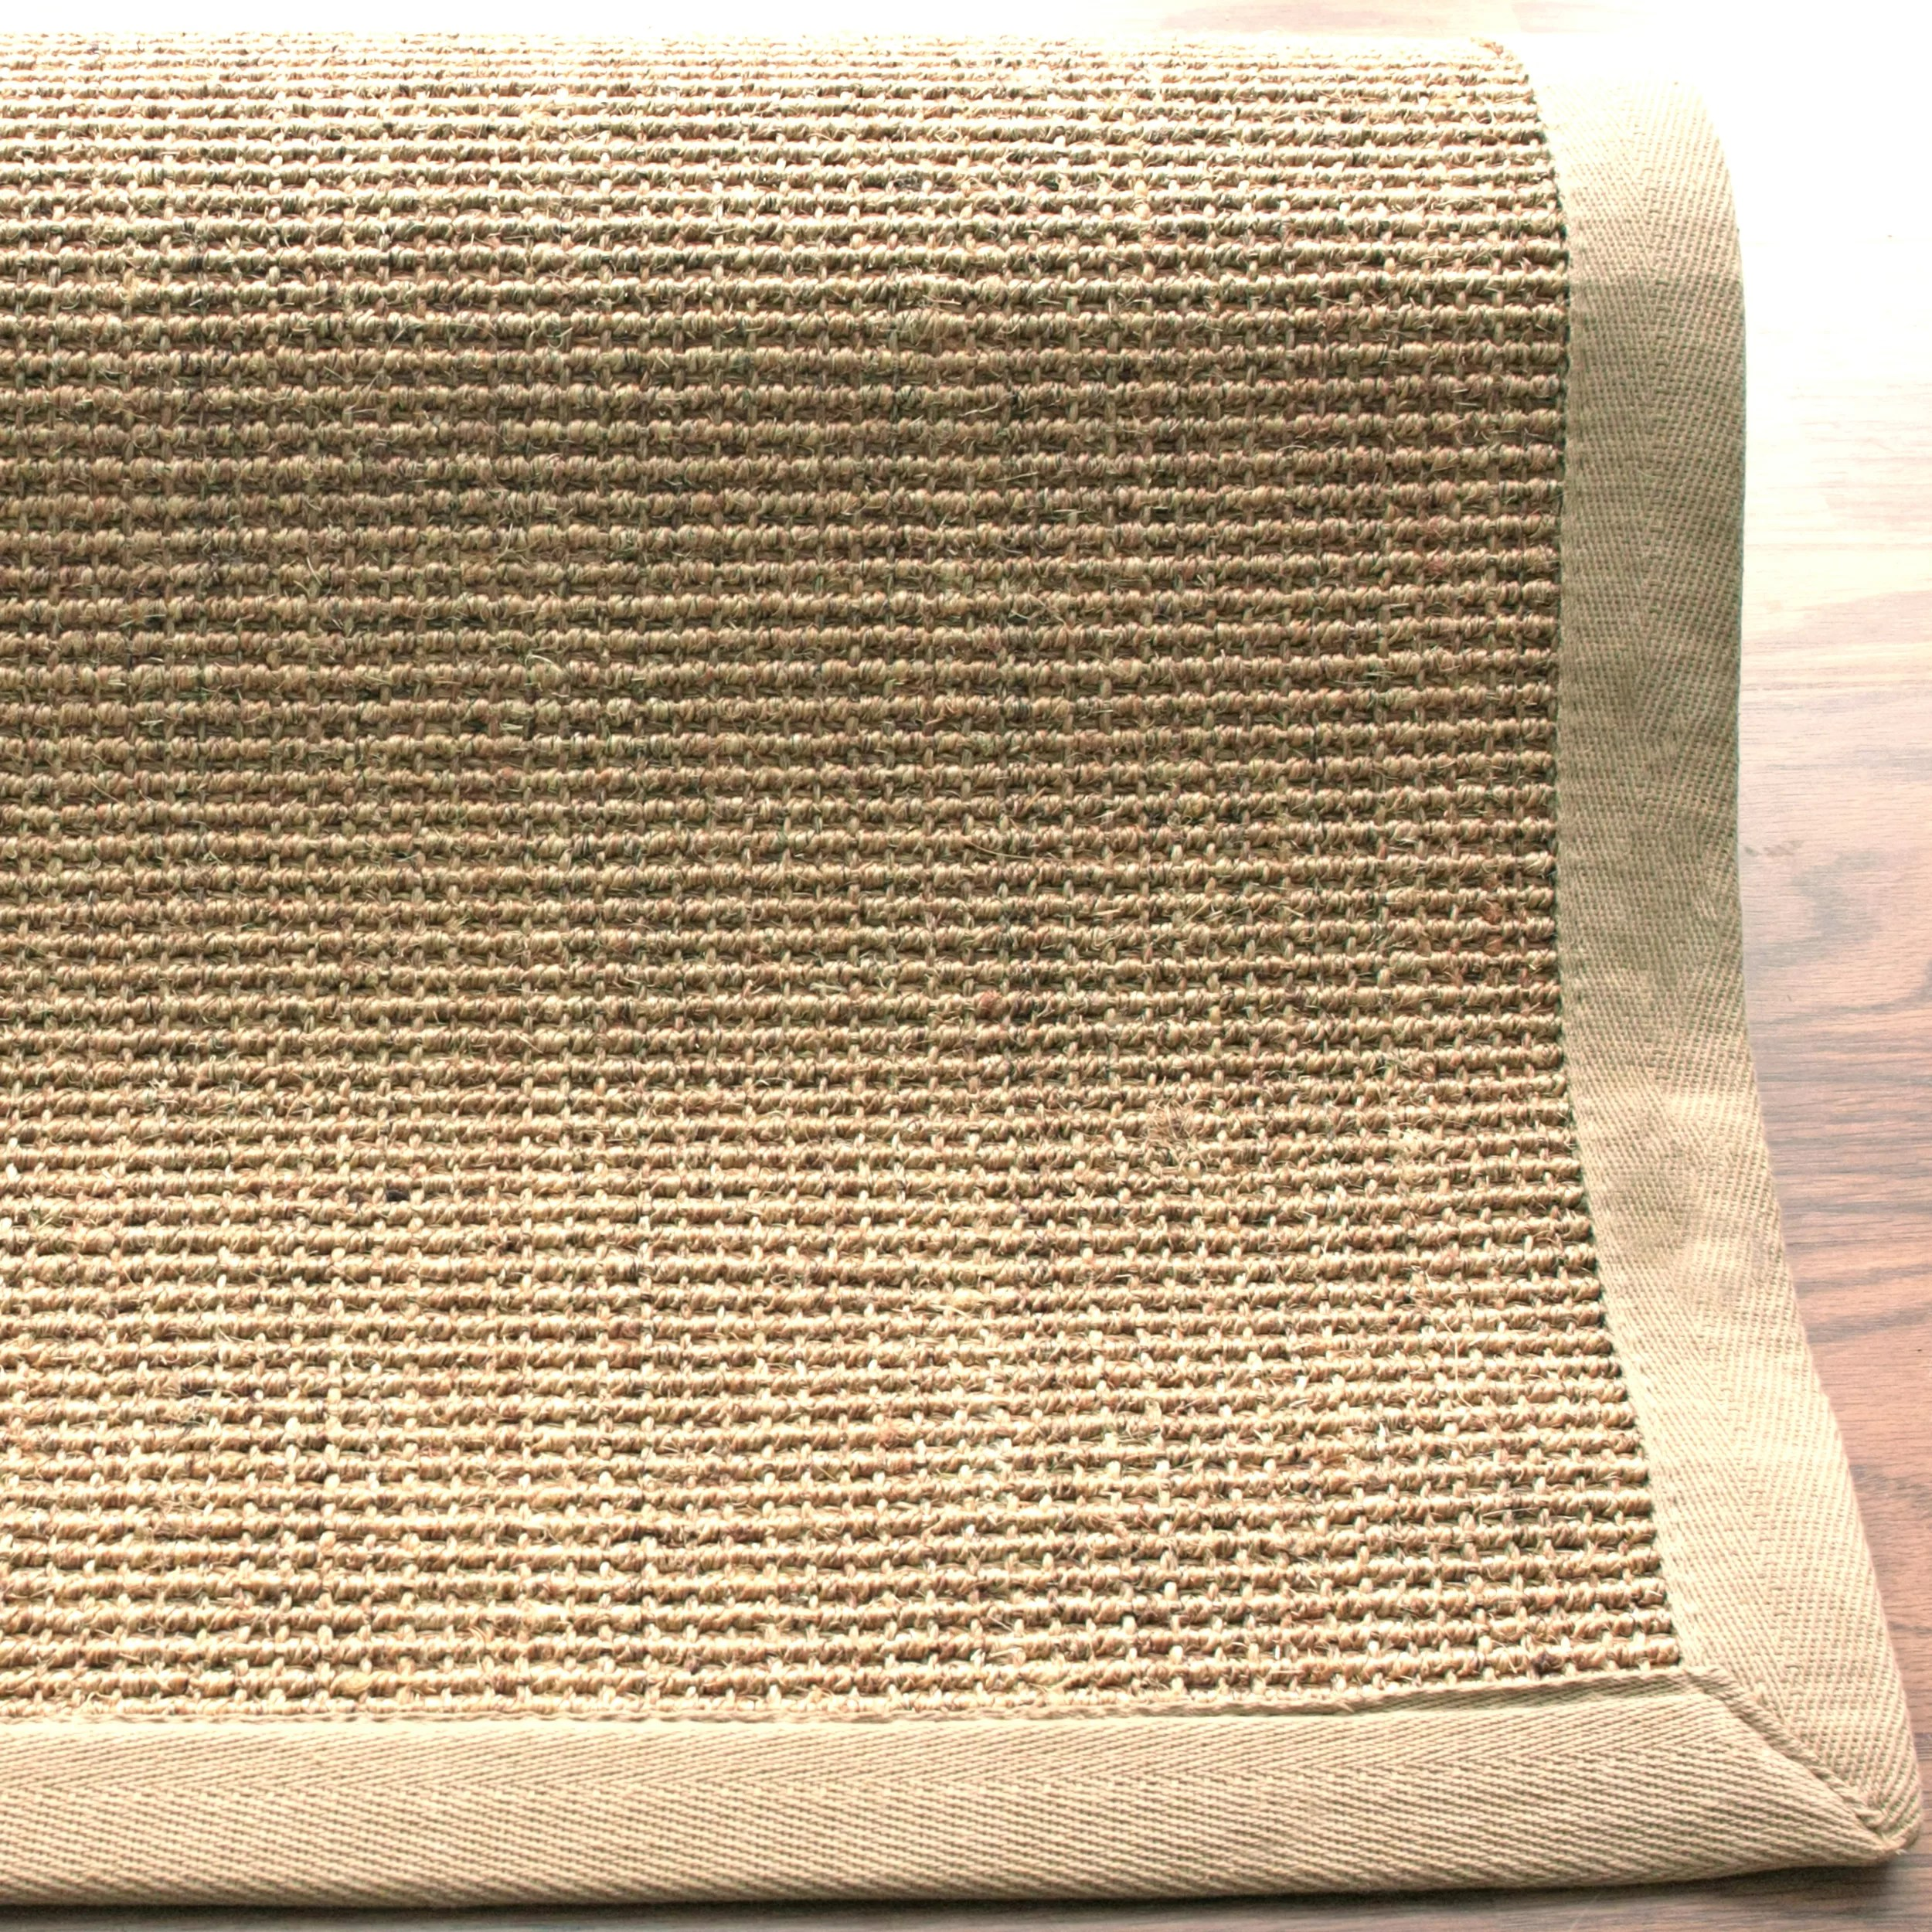 Cisale Nuloom Sisal Sand And Beige Border Area Rug And Reviews Wayfair